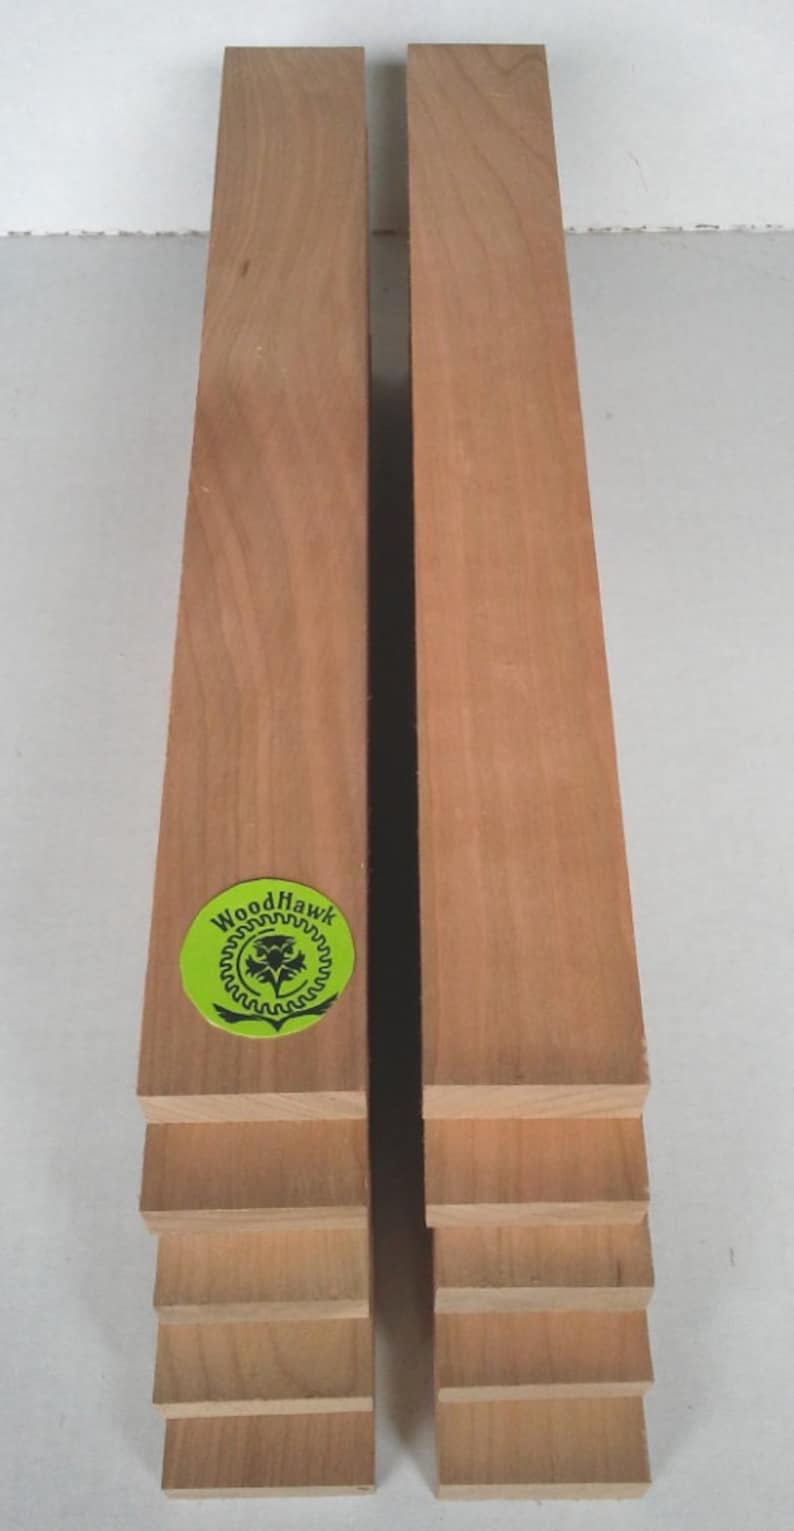 Kiln dry Made by Wood Hawk Lumber Pack of 5 or 10 CHERRY 34 x 2 x 12 Wood Lumber Boards